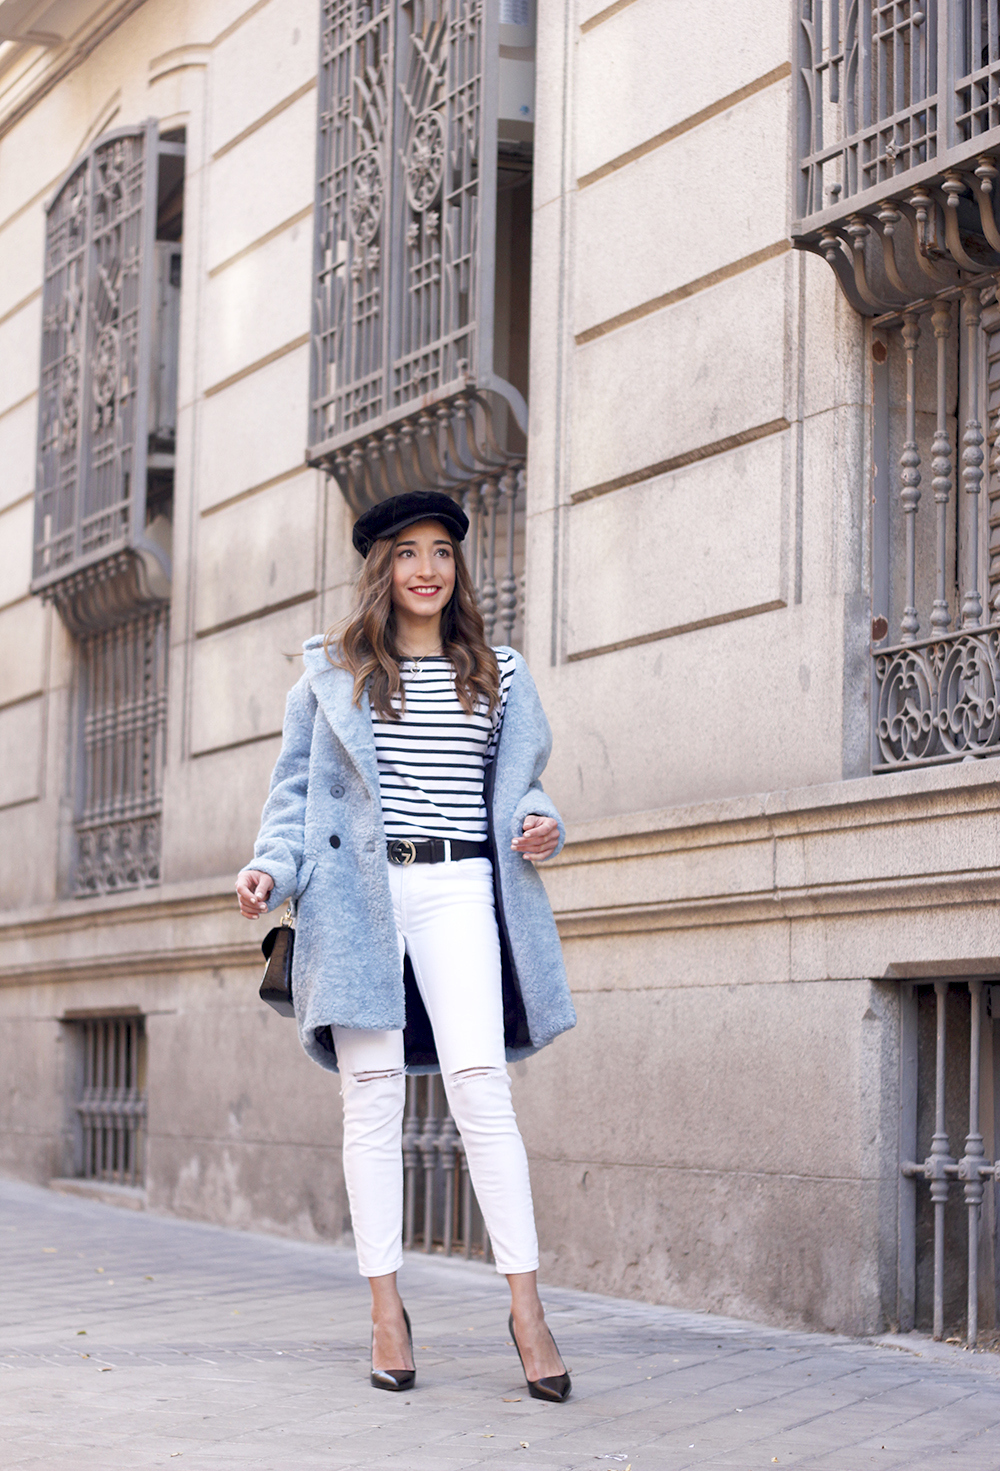 blue fur coat stripes white ripped jeans givenchy bag navy cap fall outfit street style06